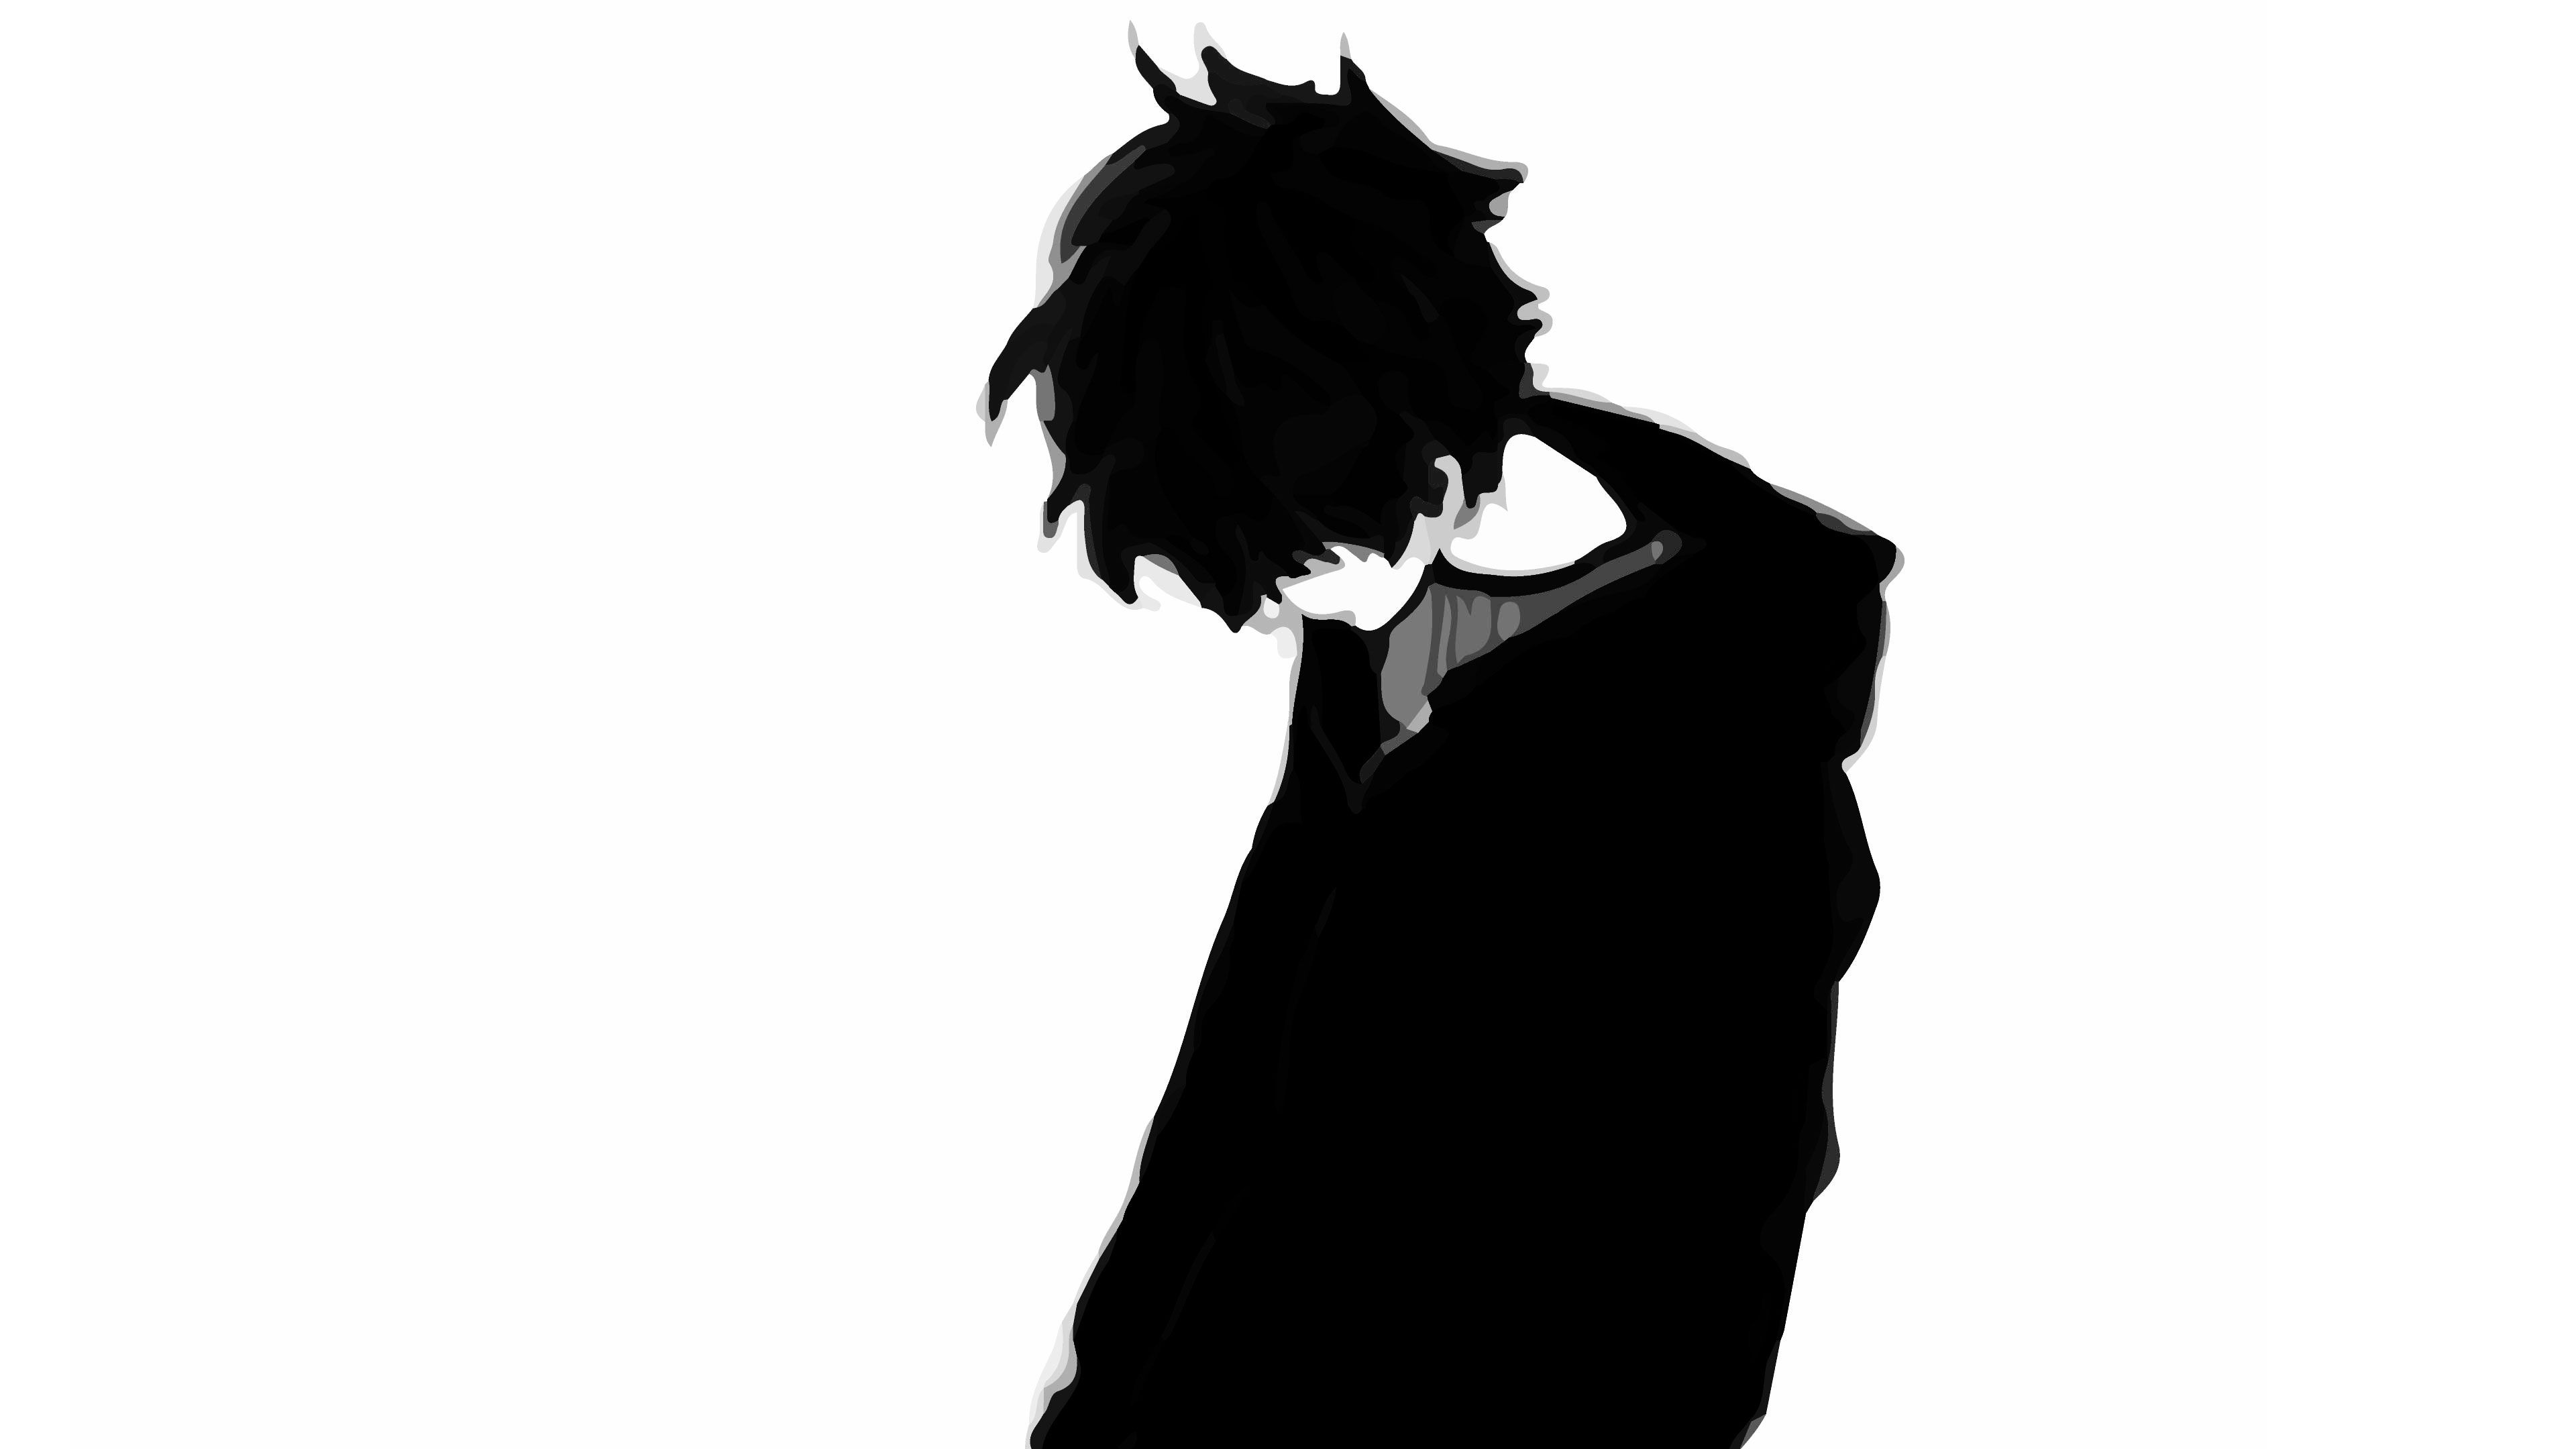 Sad Anime Black And White